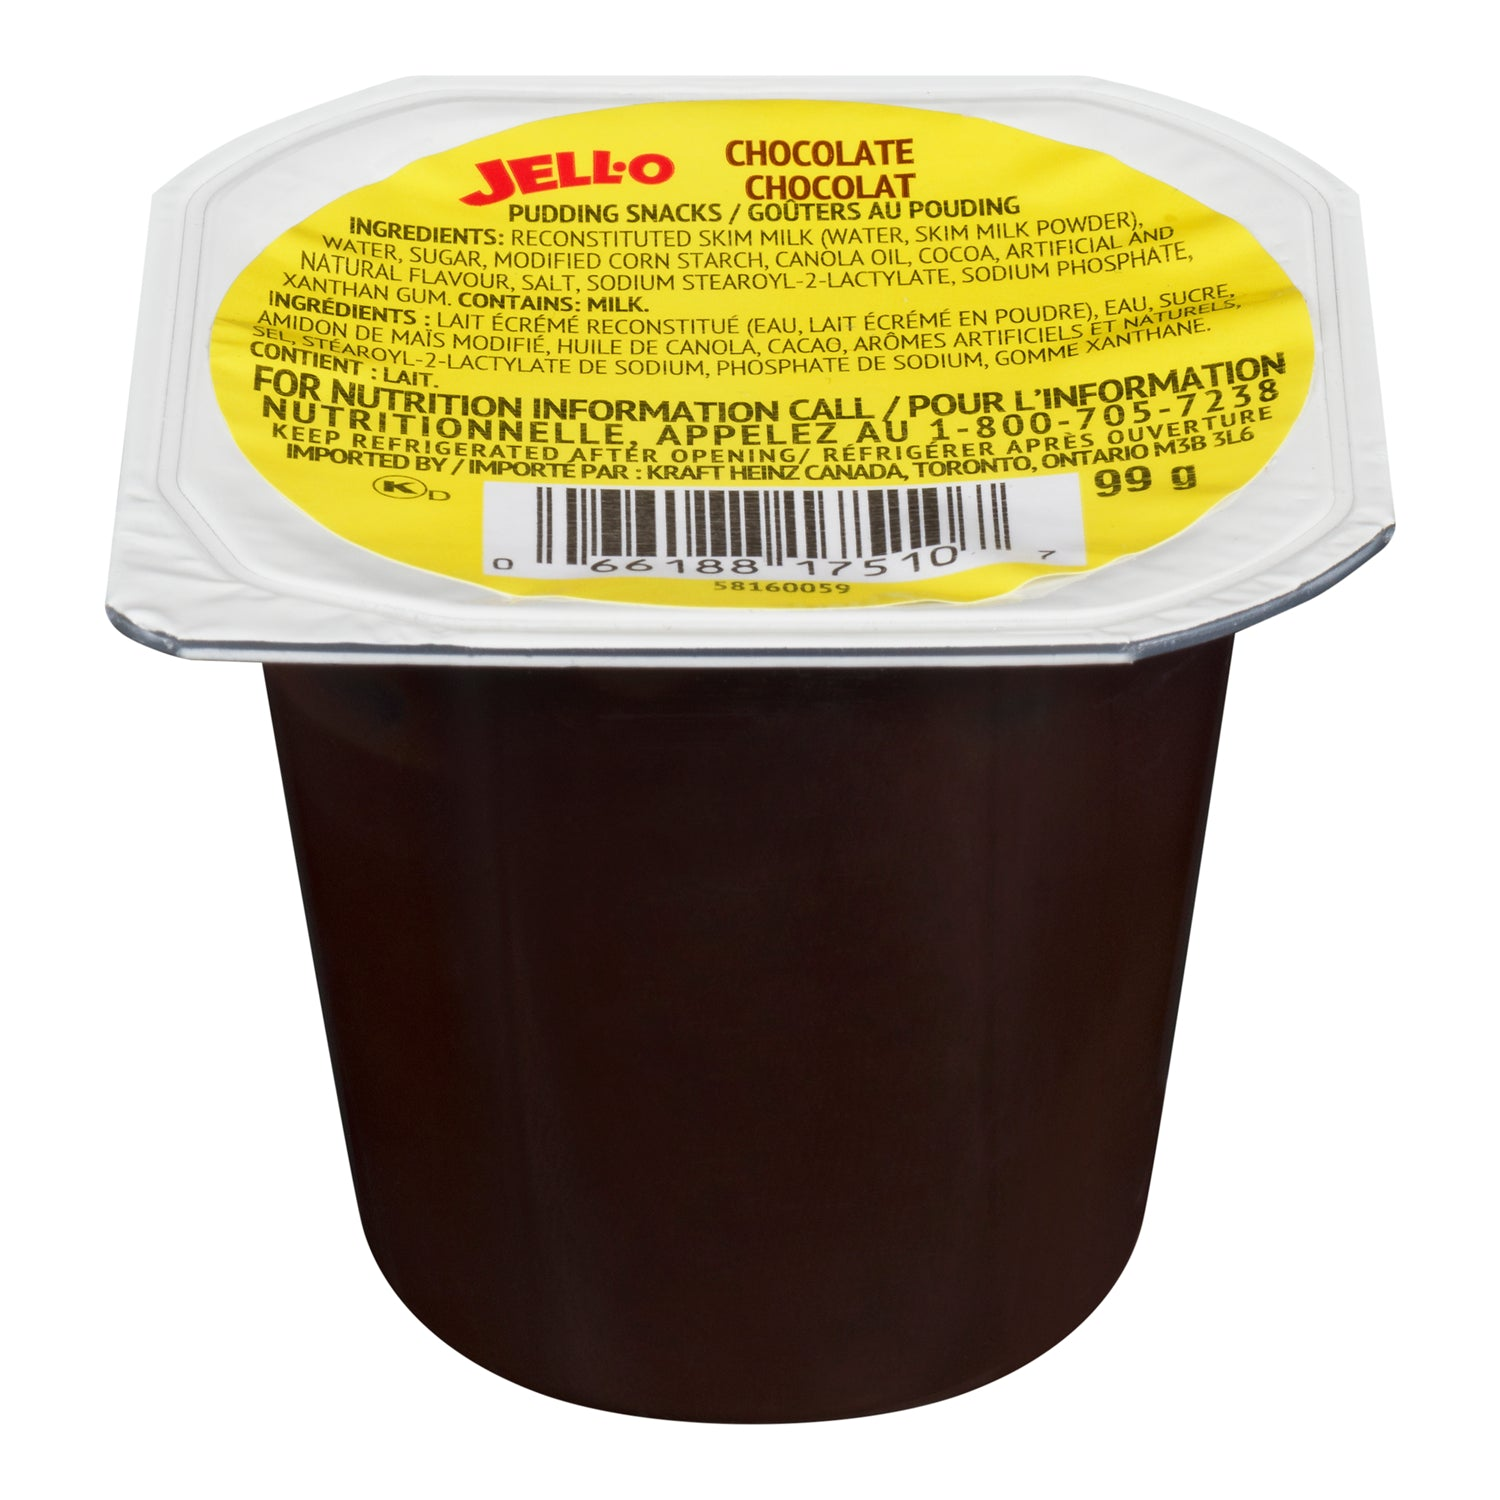 Kraft Chocolate Pudding Cup 99 g - 24 Pack [$0.75/each]